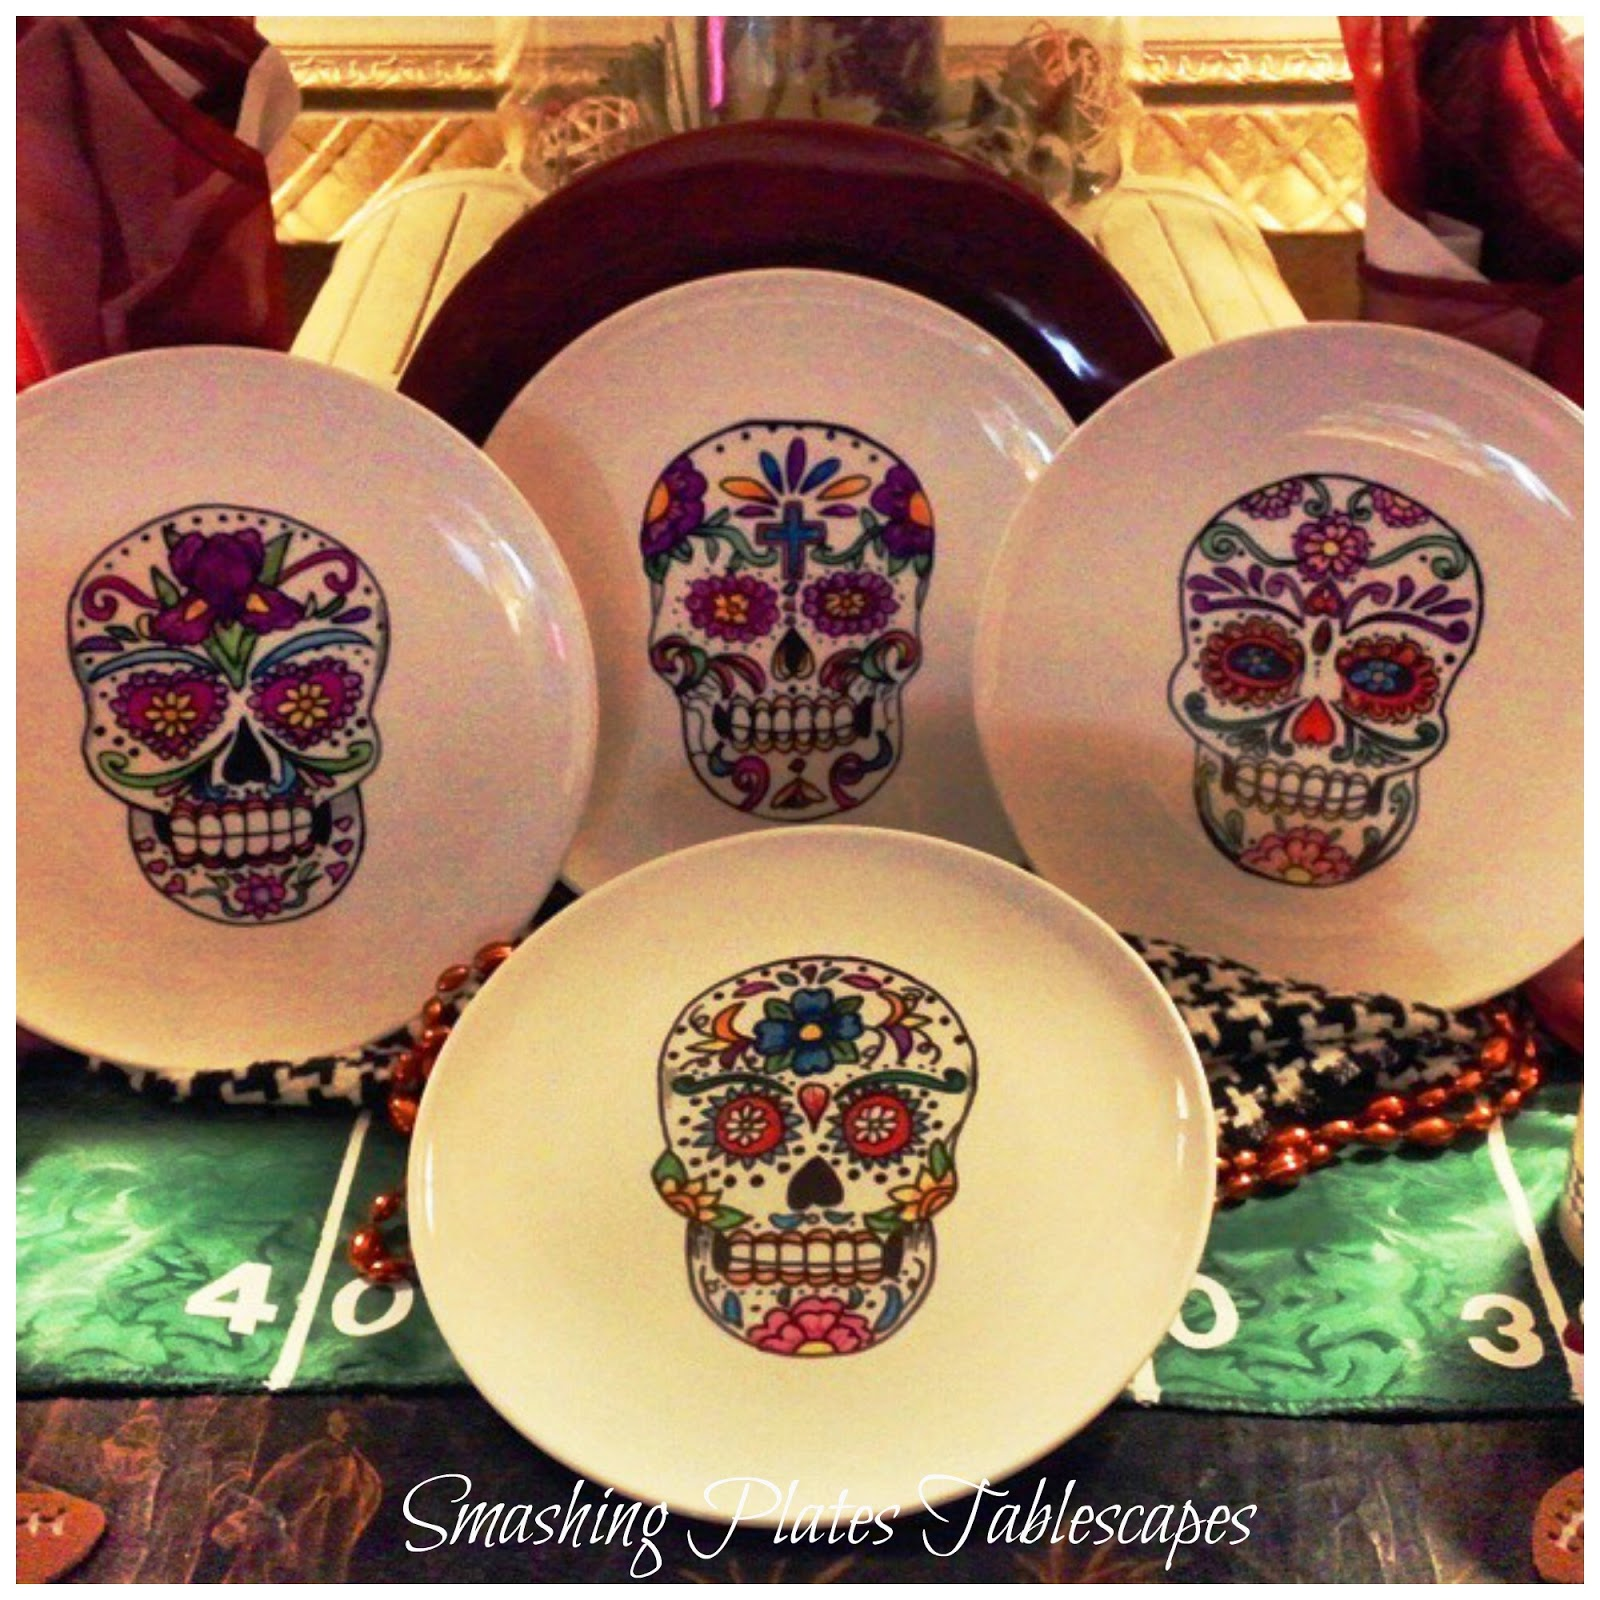 Day of the Dead plates I painted with Sharpies. & Smashing Plates Tablescapes: Halloween u0026 Dia de los Muertos Decor